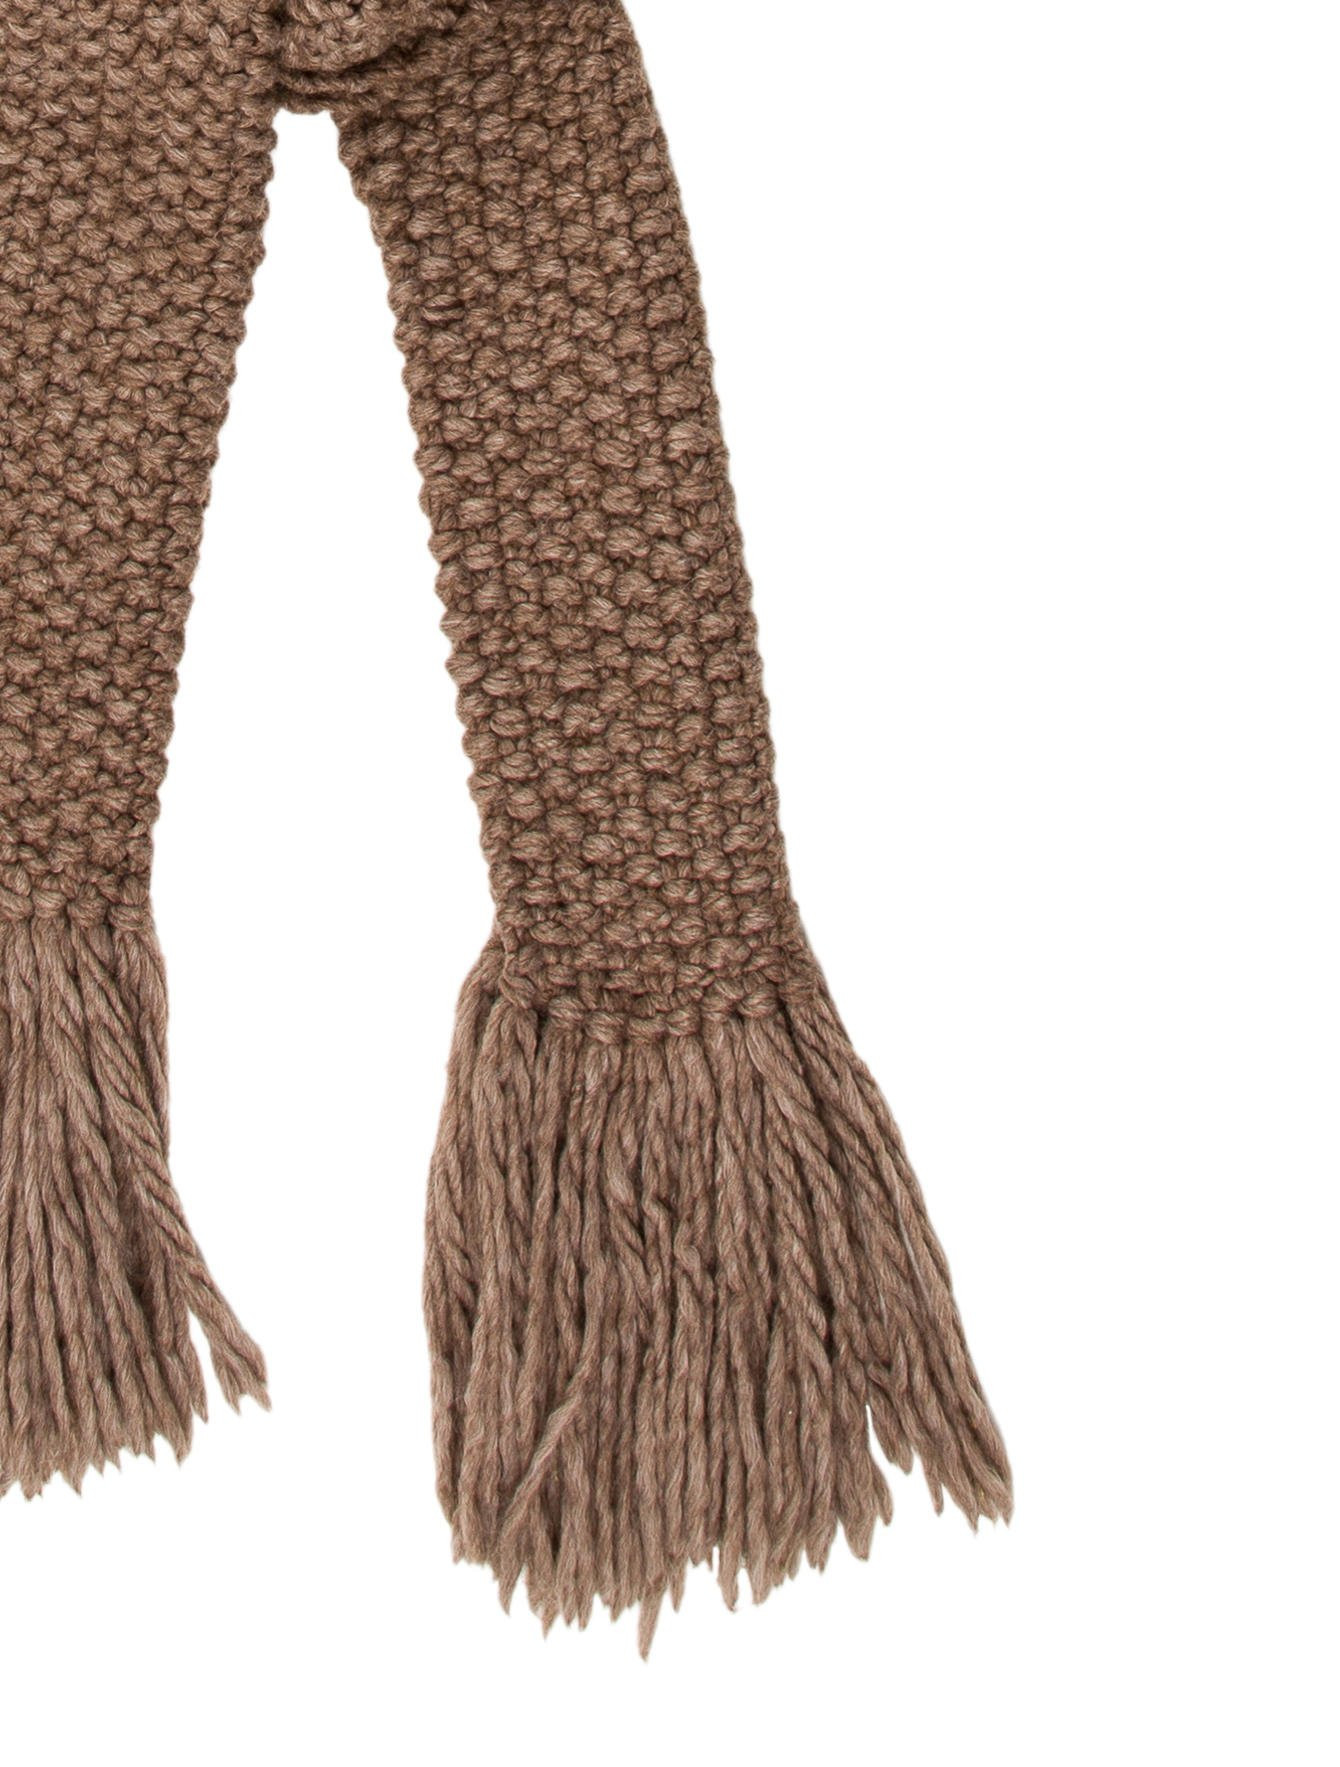 New Michael Kors Cable Knit Fringe Scarf Accessories Cable Knit Scarf Of Delightful 48 Ideas Cable Knit Scarf